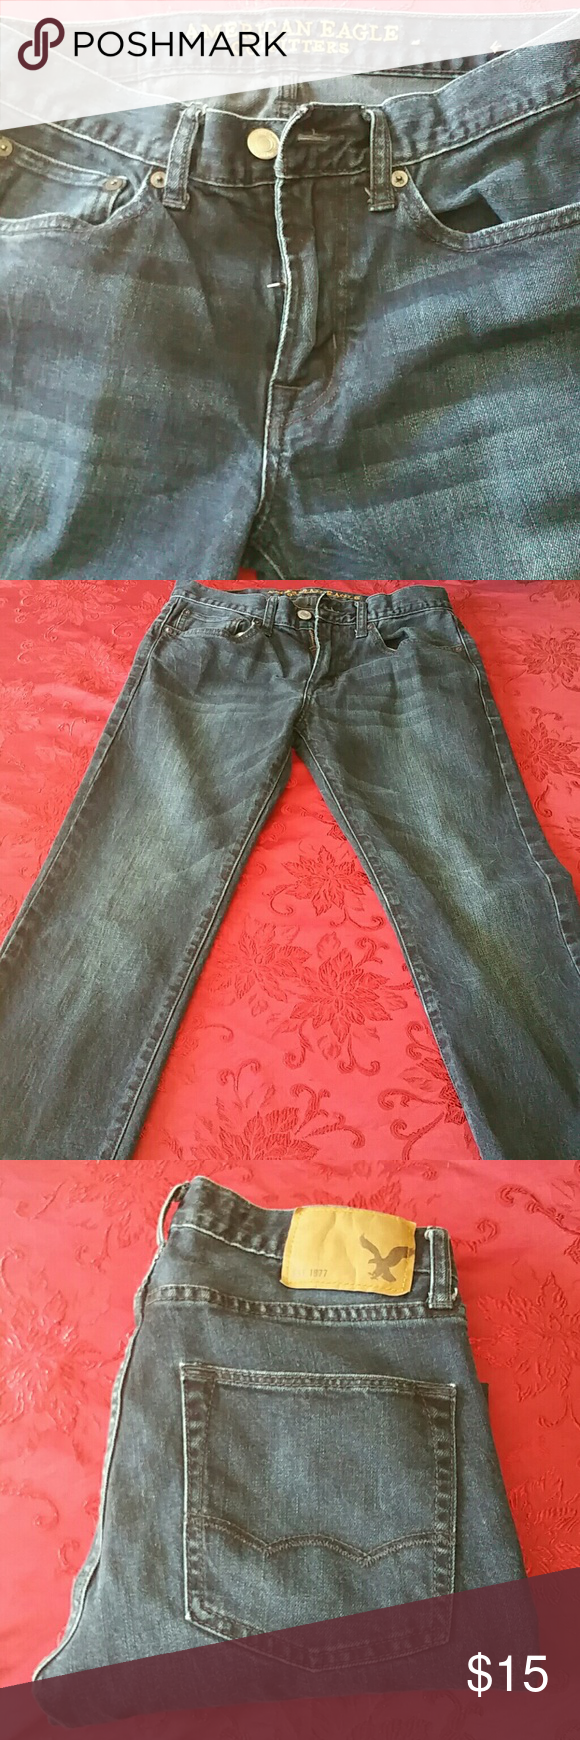 American Eagle Mens Jeans American Eagle Slim Straight Mens jeans. 28x32. Like new condition. NO fraying at bottom of legs. American Eagle Outfitters Jeans Slim Straight